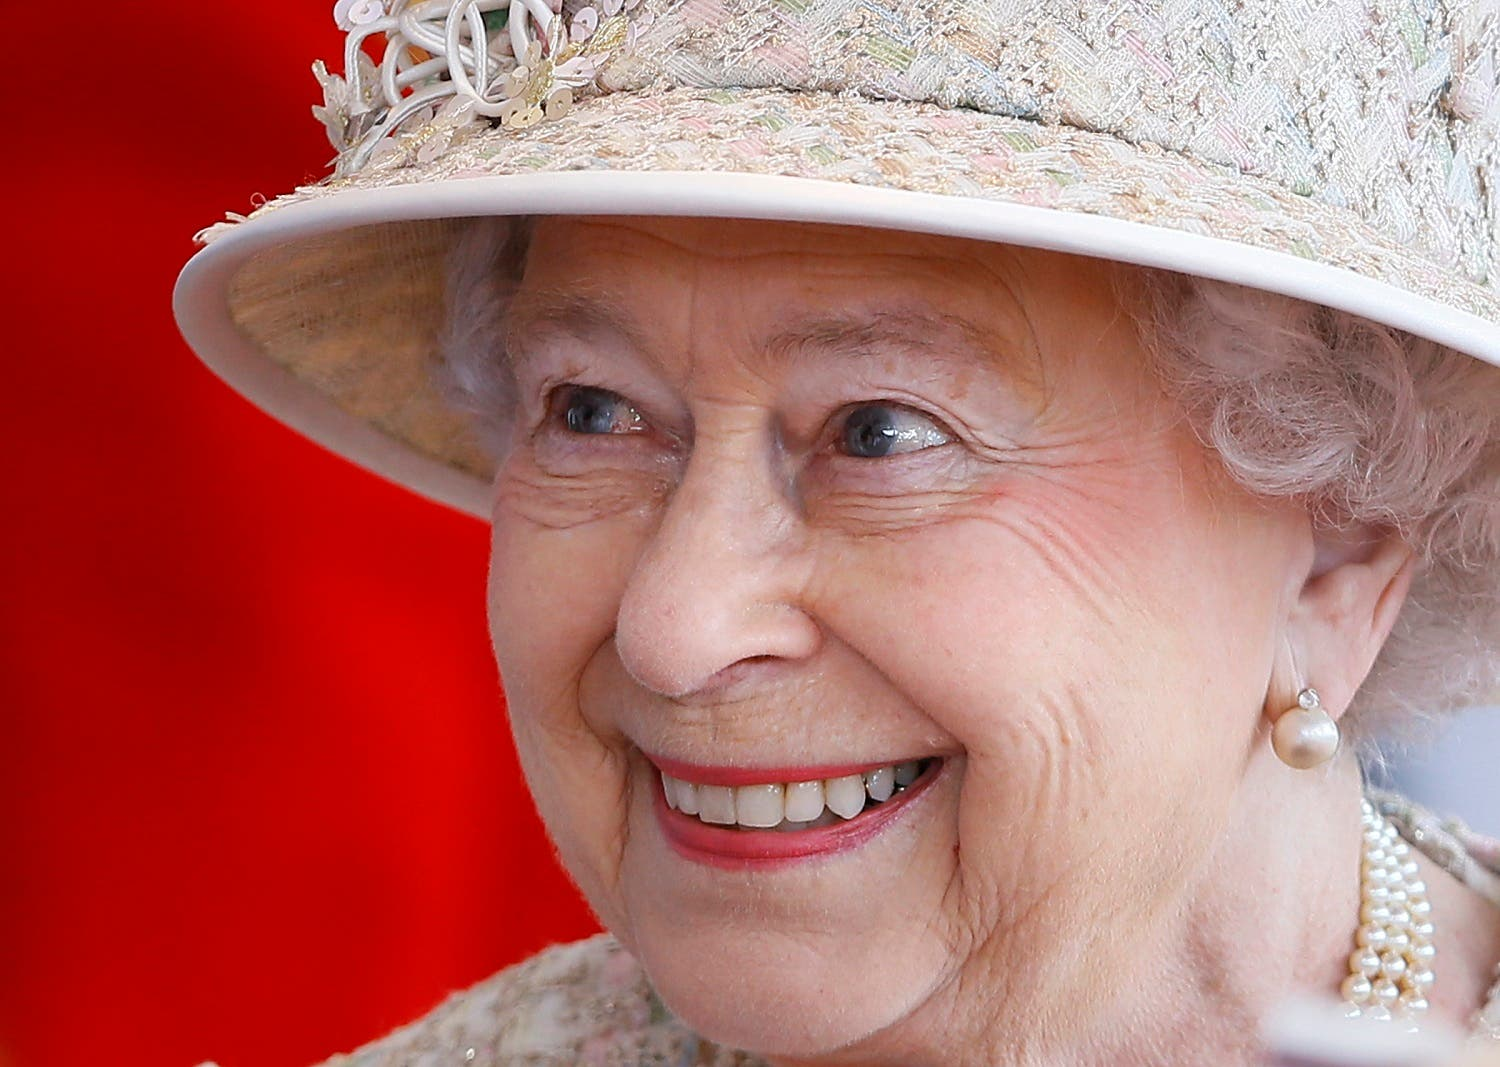 Britain's Queen Elizabeth II smiles as she awaits the arrival of the President of the United Arab Emirates Sheik Khalifa bin Zayed Al Nahyan in Windsor in England, Tuesday, April 30, 2013 (Photo: AP /Kirsty Wigglesworth, pool)